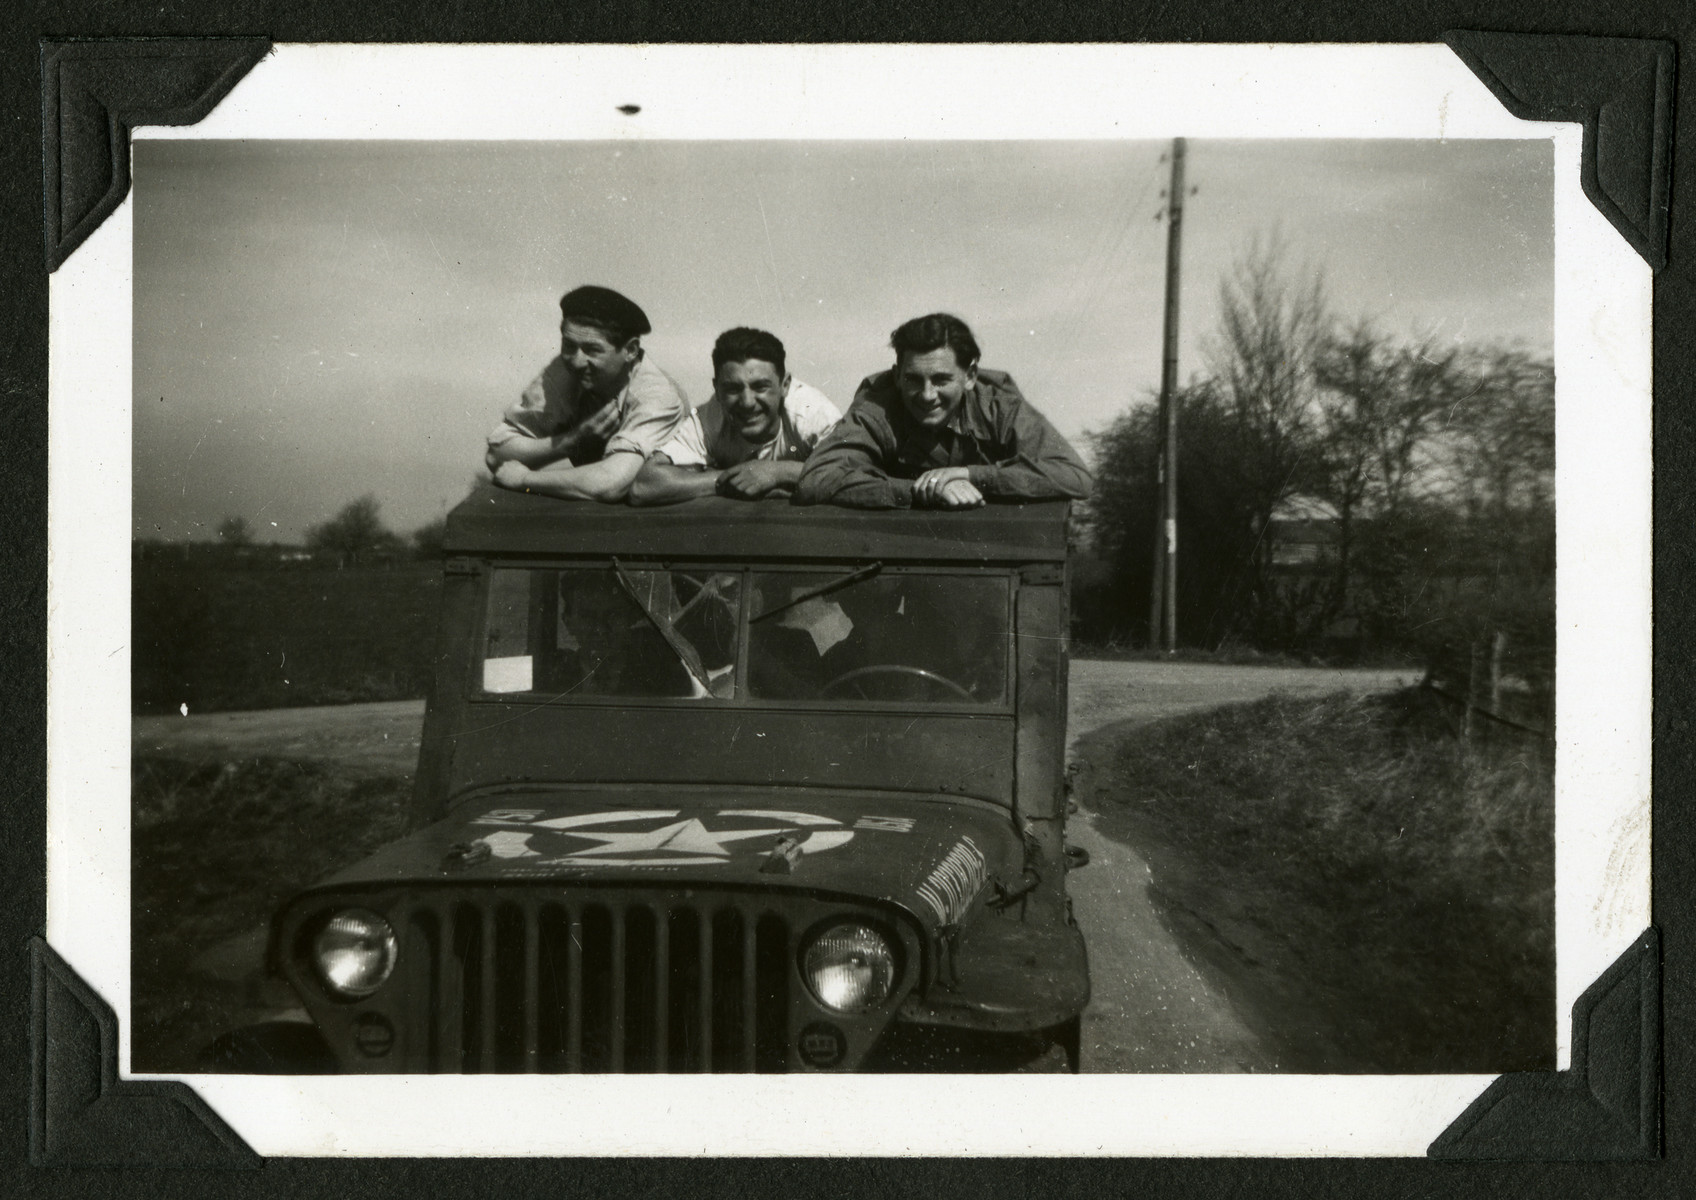 Three members of a hachshara in Leve, Belgium lean against the roof of a jeep.